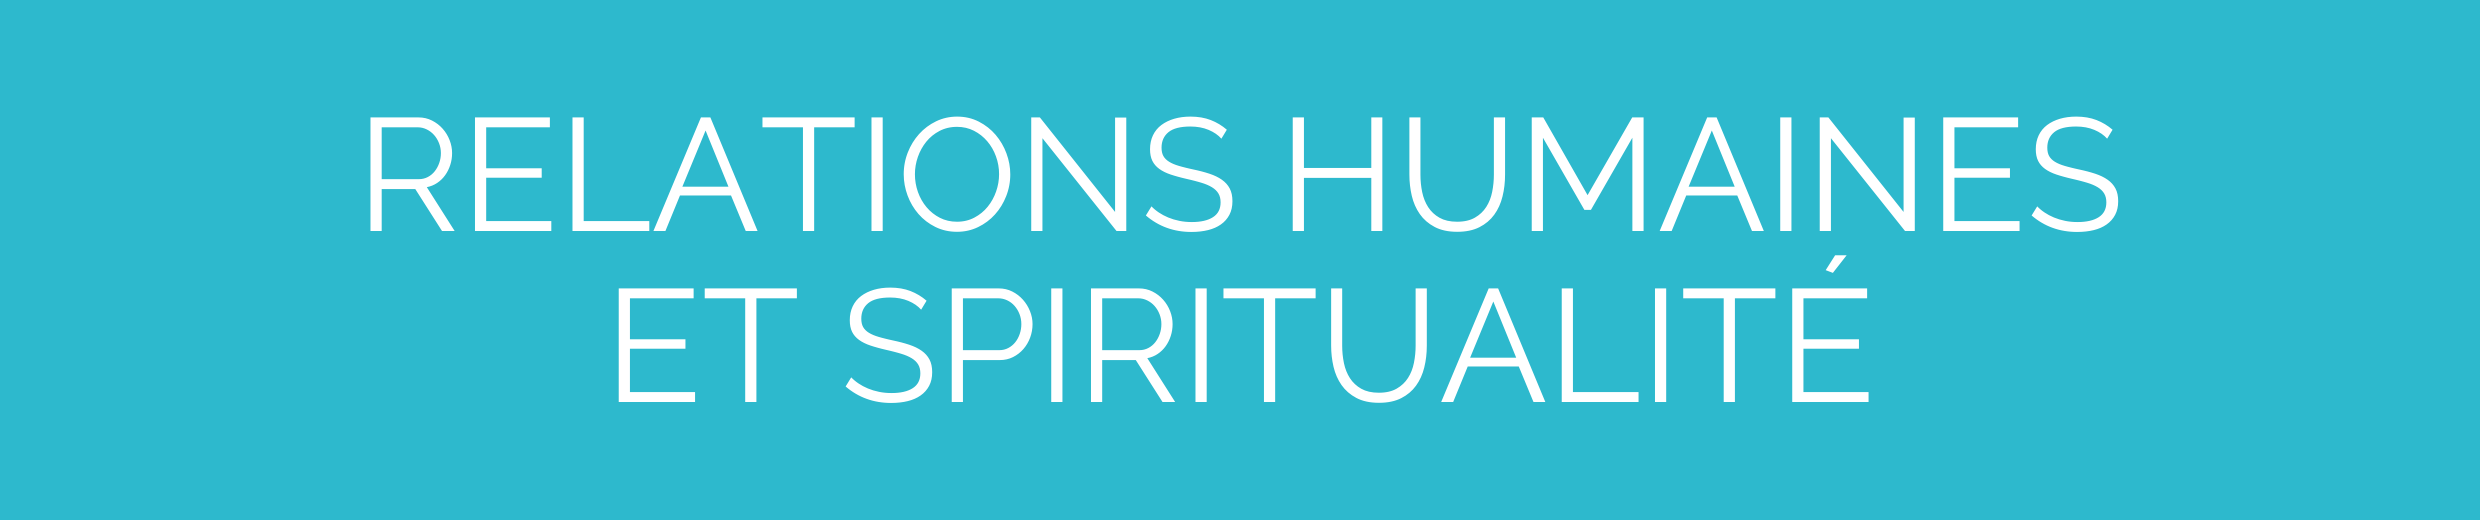 Relations humaines et spiritualité